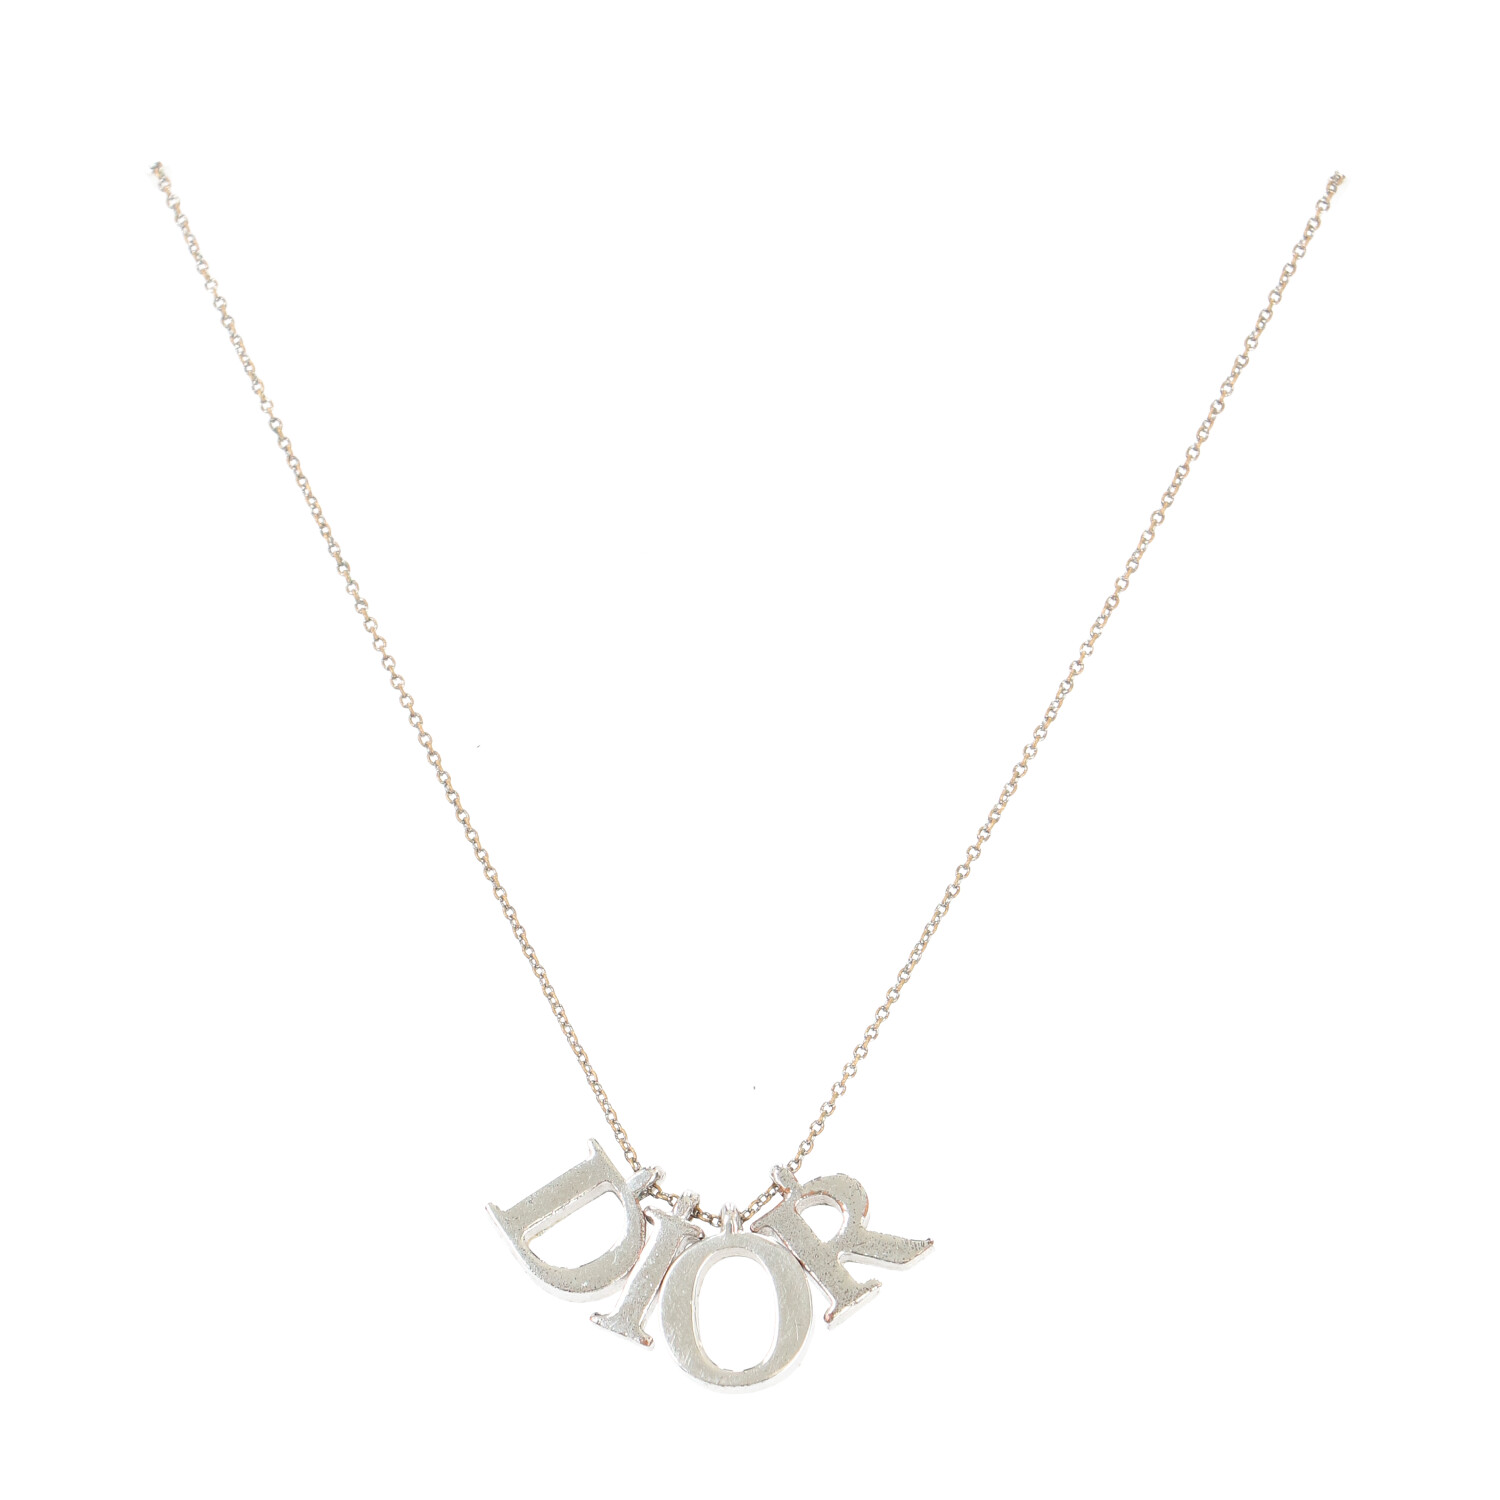 Dior Silver Letter Necklace